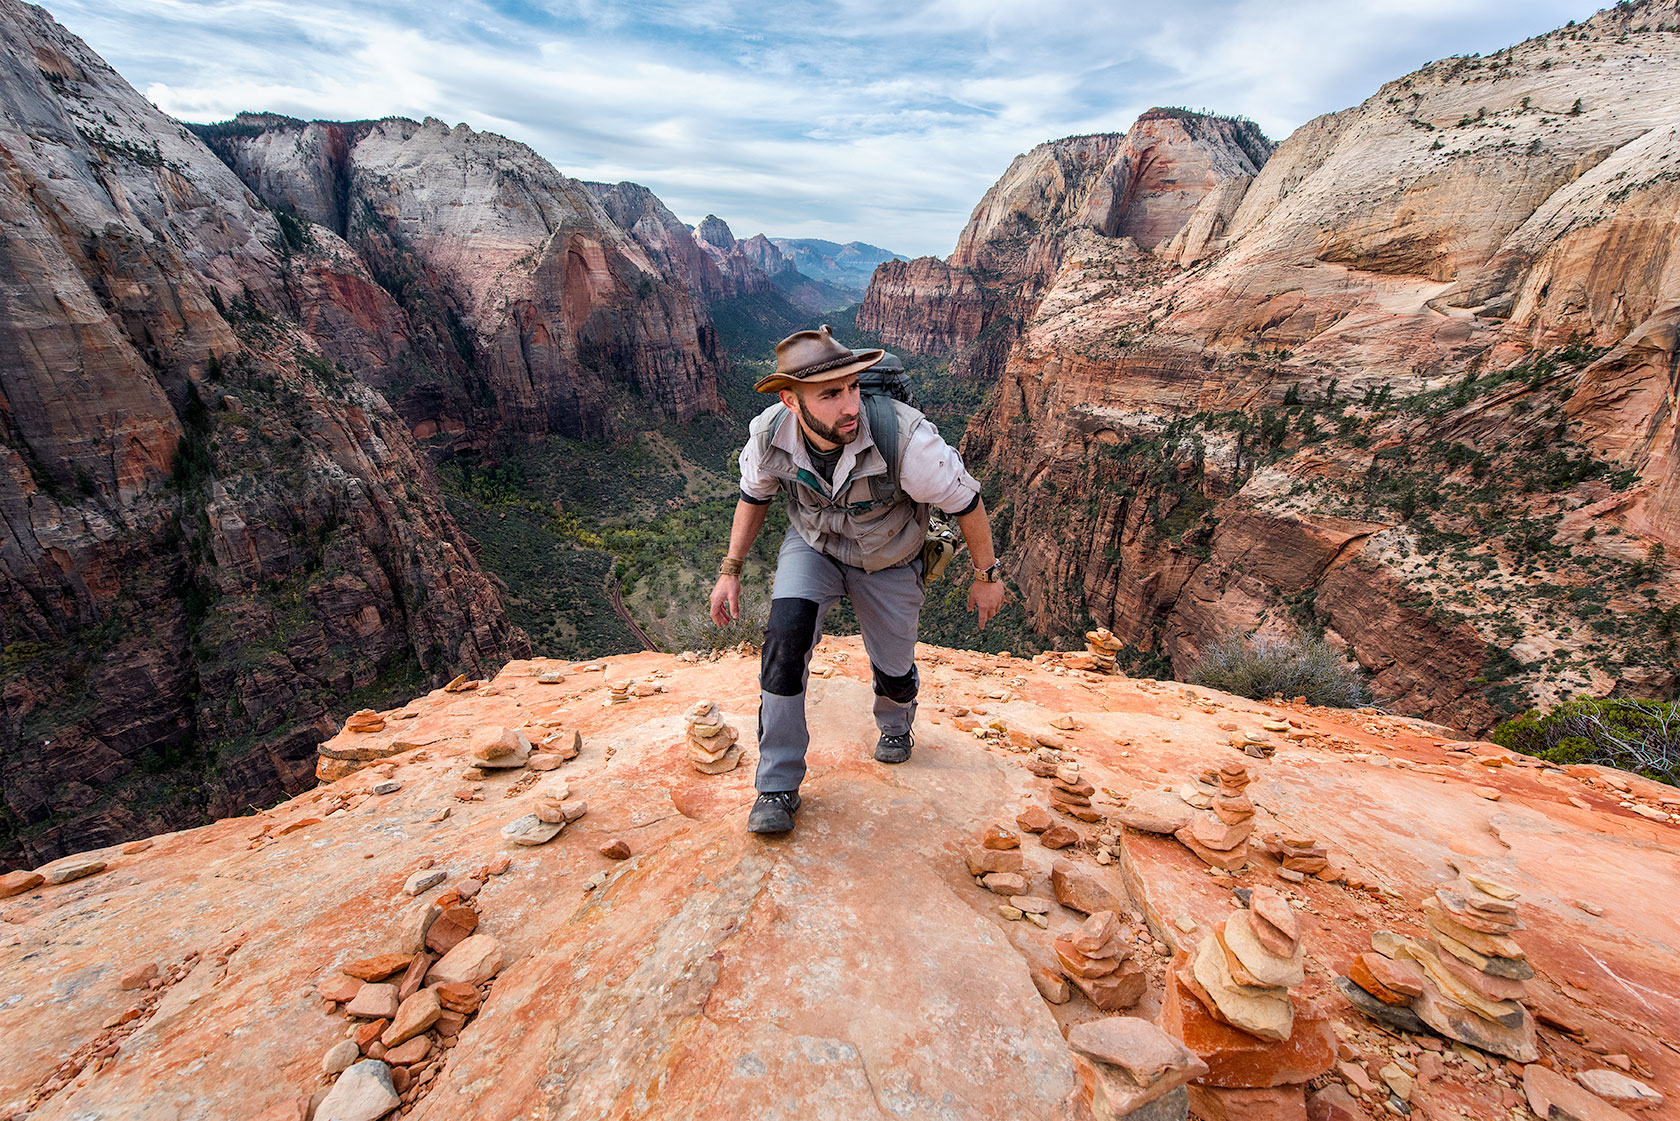 austin-trigg-brave-wilderness-utah-zion-Coyote-peterson-Angels-Landing-hiking.jpg